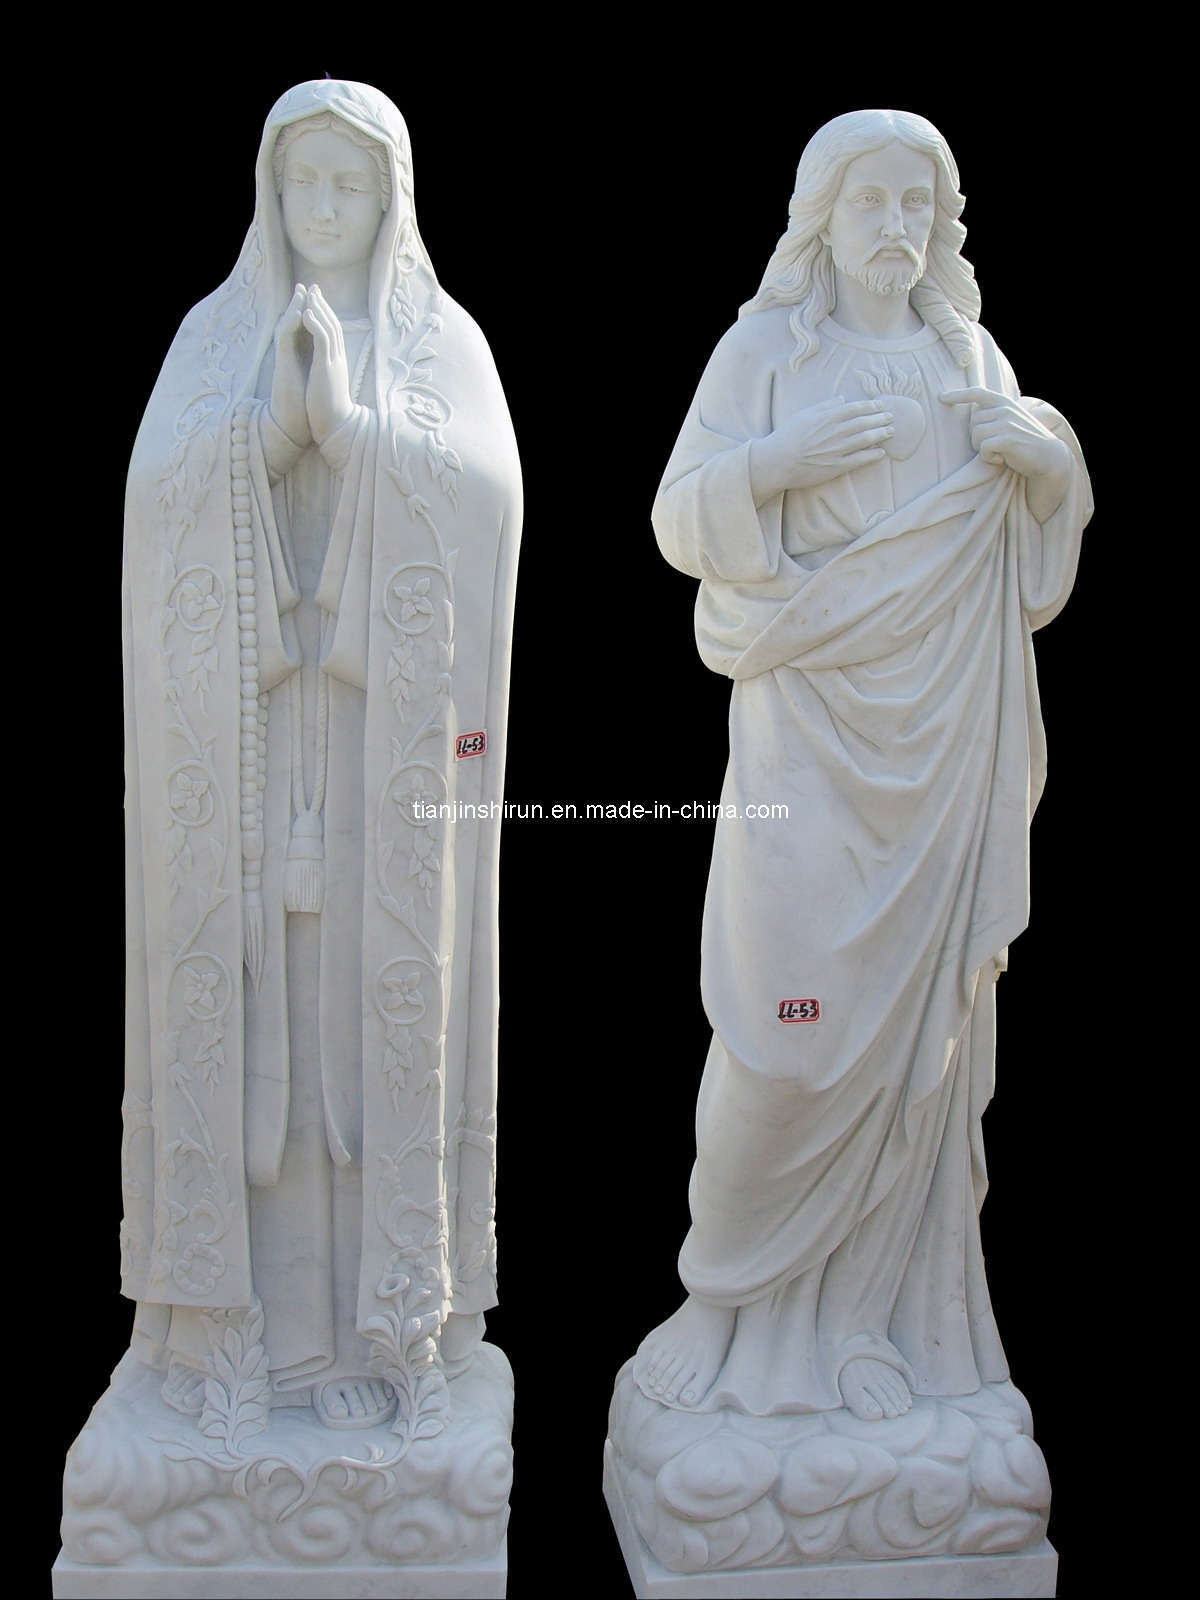 Stone Carving Holly Virgin Mother Maria Statue Sculpture (LL60)